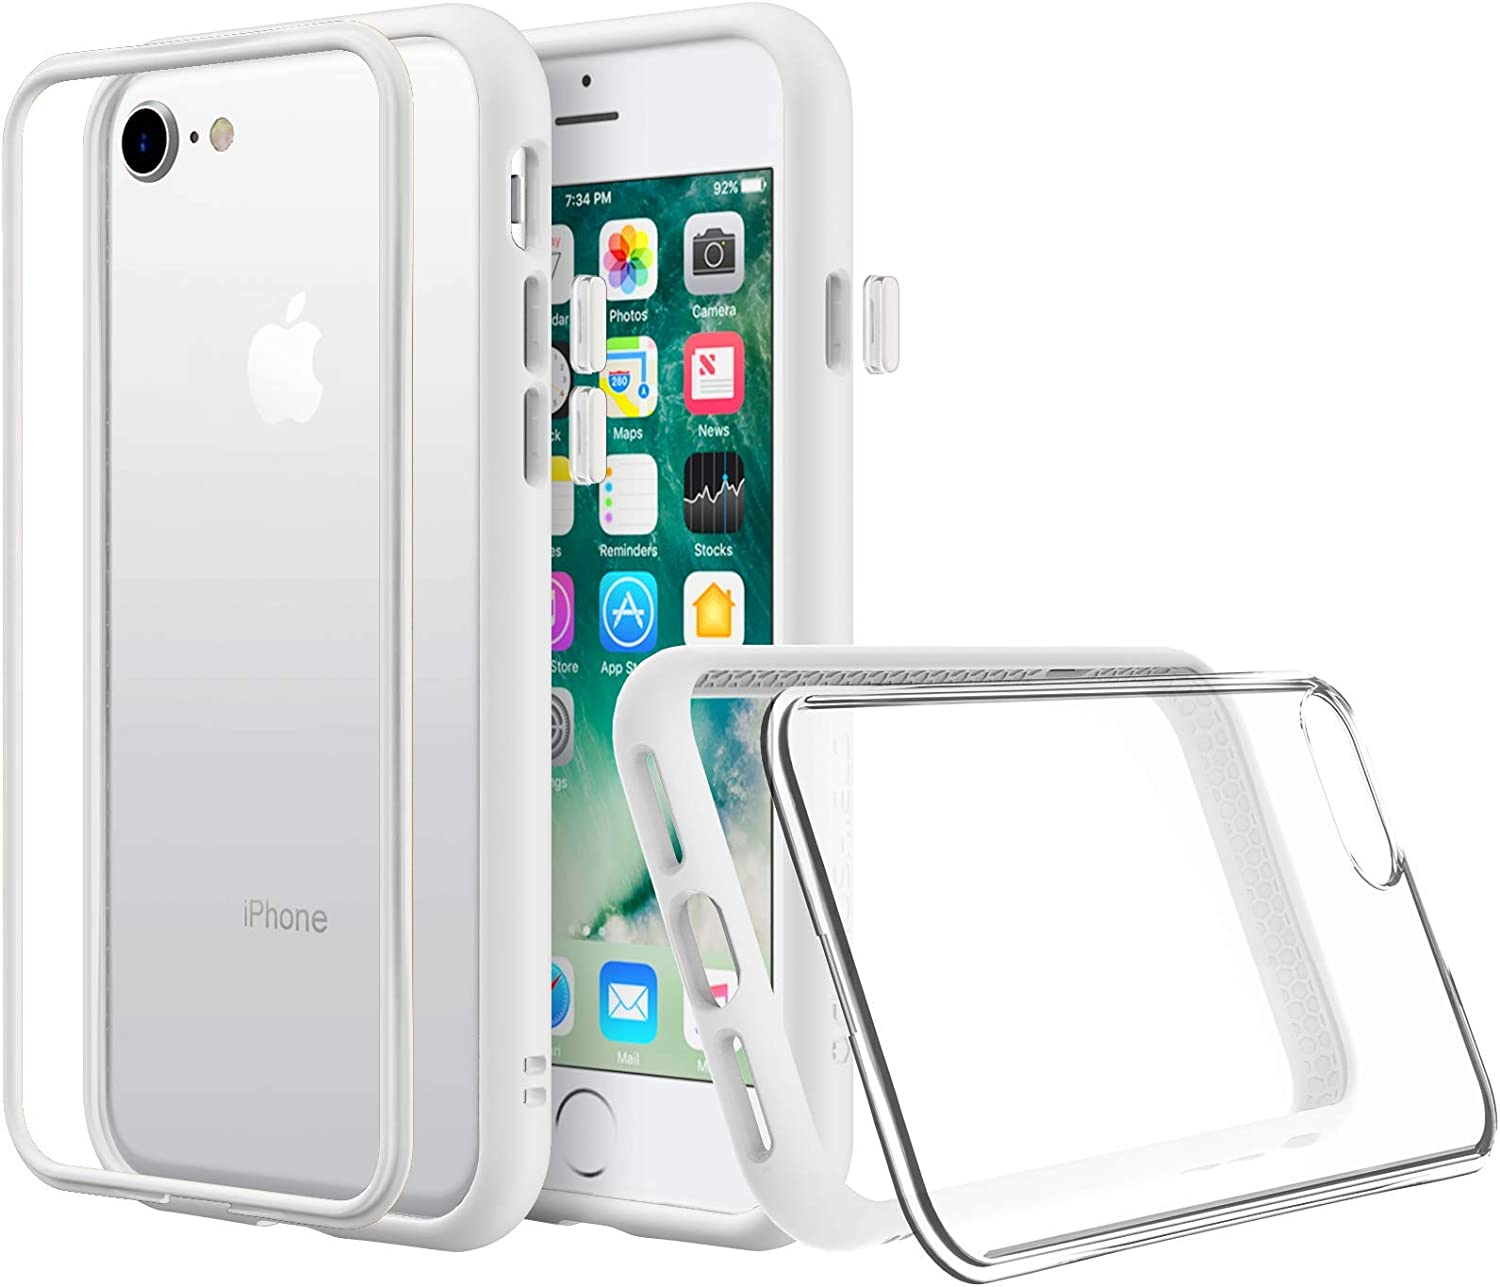 Amazon Com Rhinoshield Modular Case Compatible With Iphone Se2 Se 2020 8 7 Mod Nx Customizable Shock Absorbent Heavy Duty Protective Cover Shockproof White Bumper With Clear Back